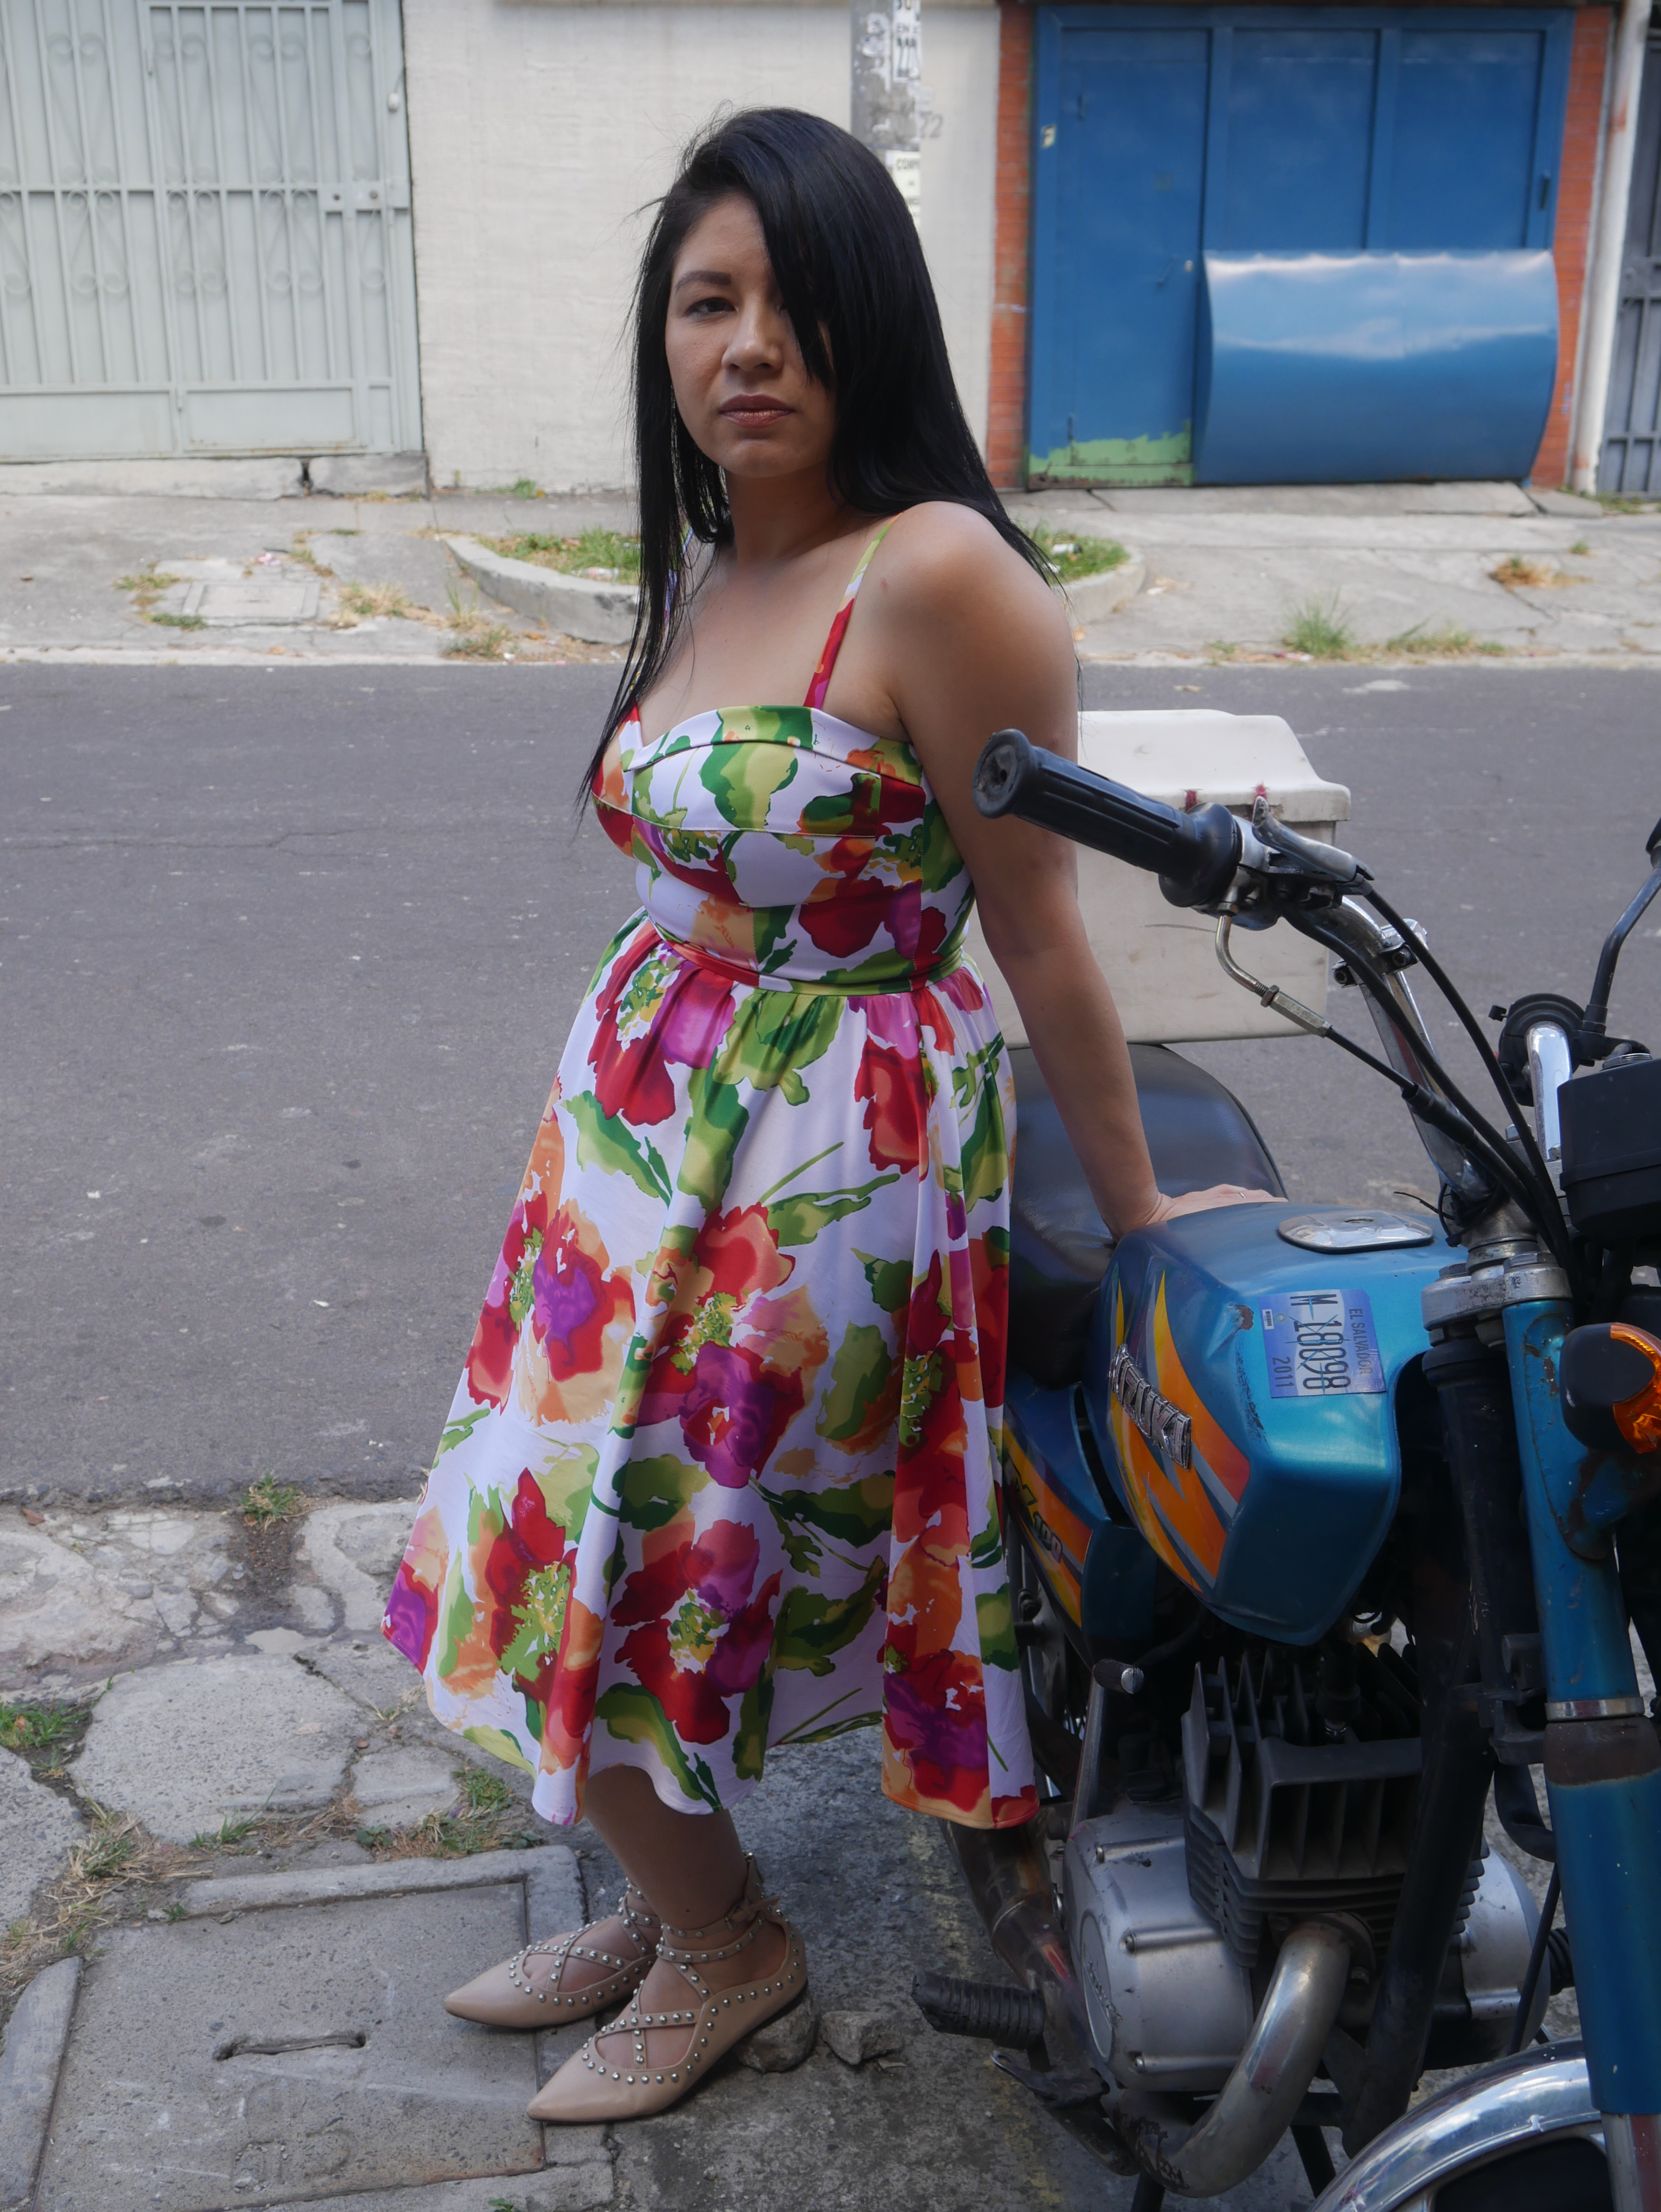 Reasoned Explanations Why Marry A Brazilian Woman Gets Bad Reviews